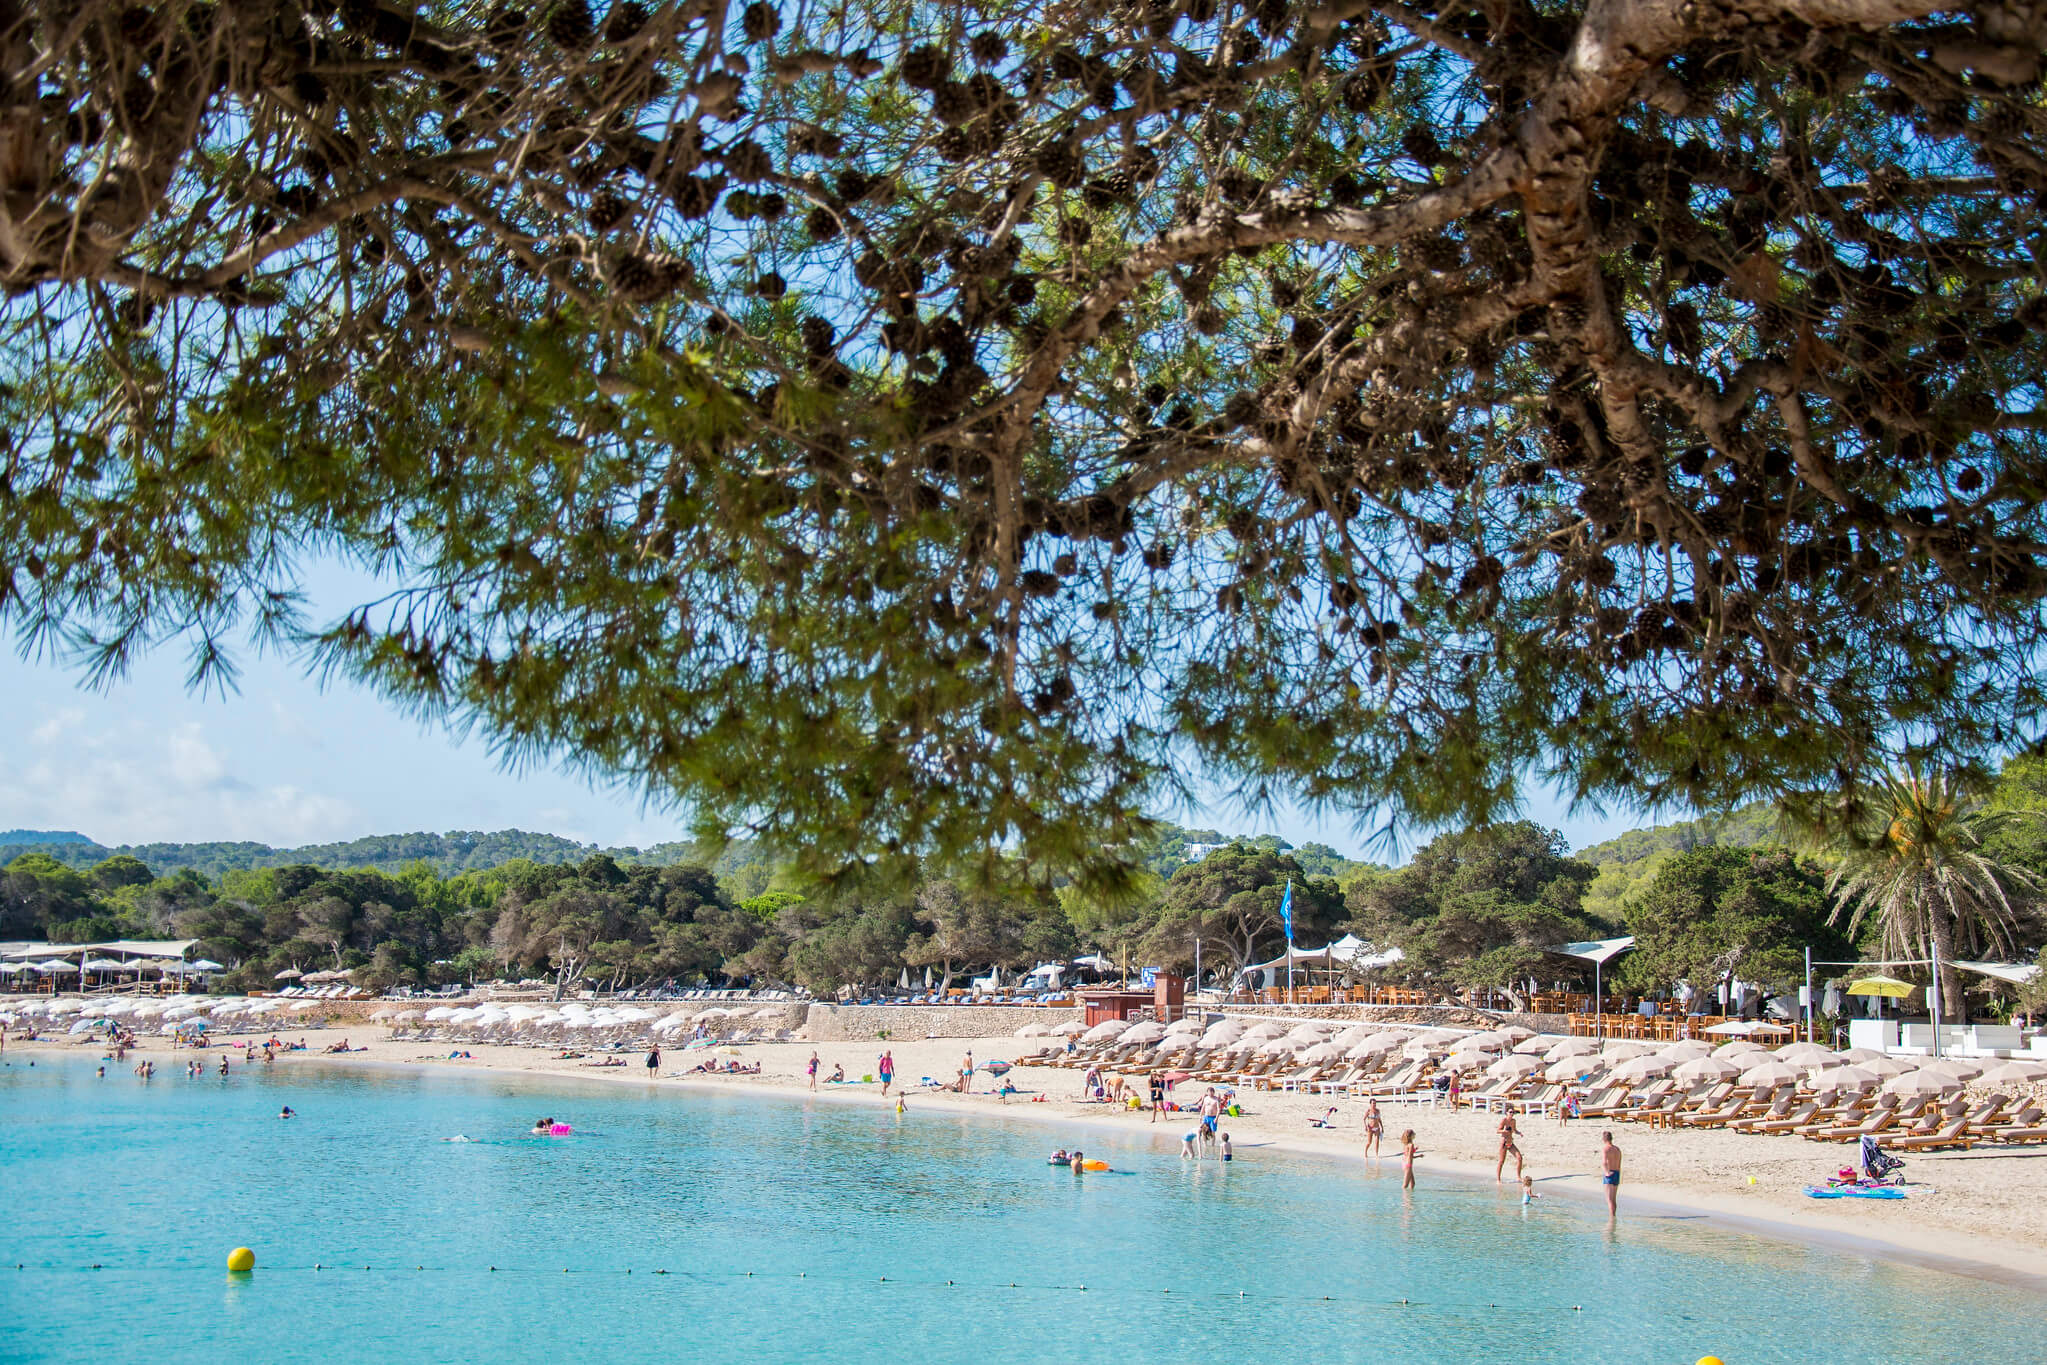 https://www.white-ibiza.com/wp-content/uploads/2020/03/ibiza-beaches-cala-bassa-01.jpg